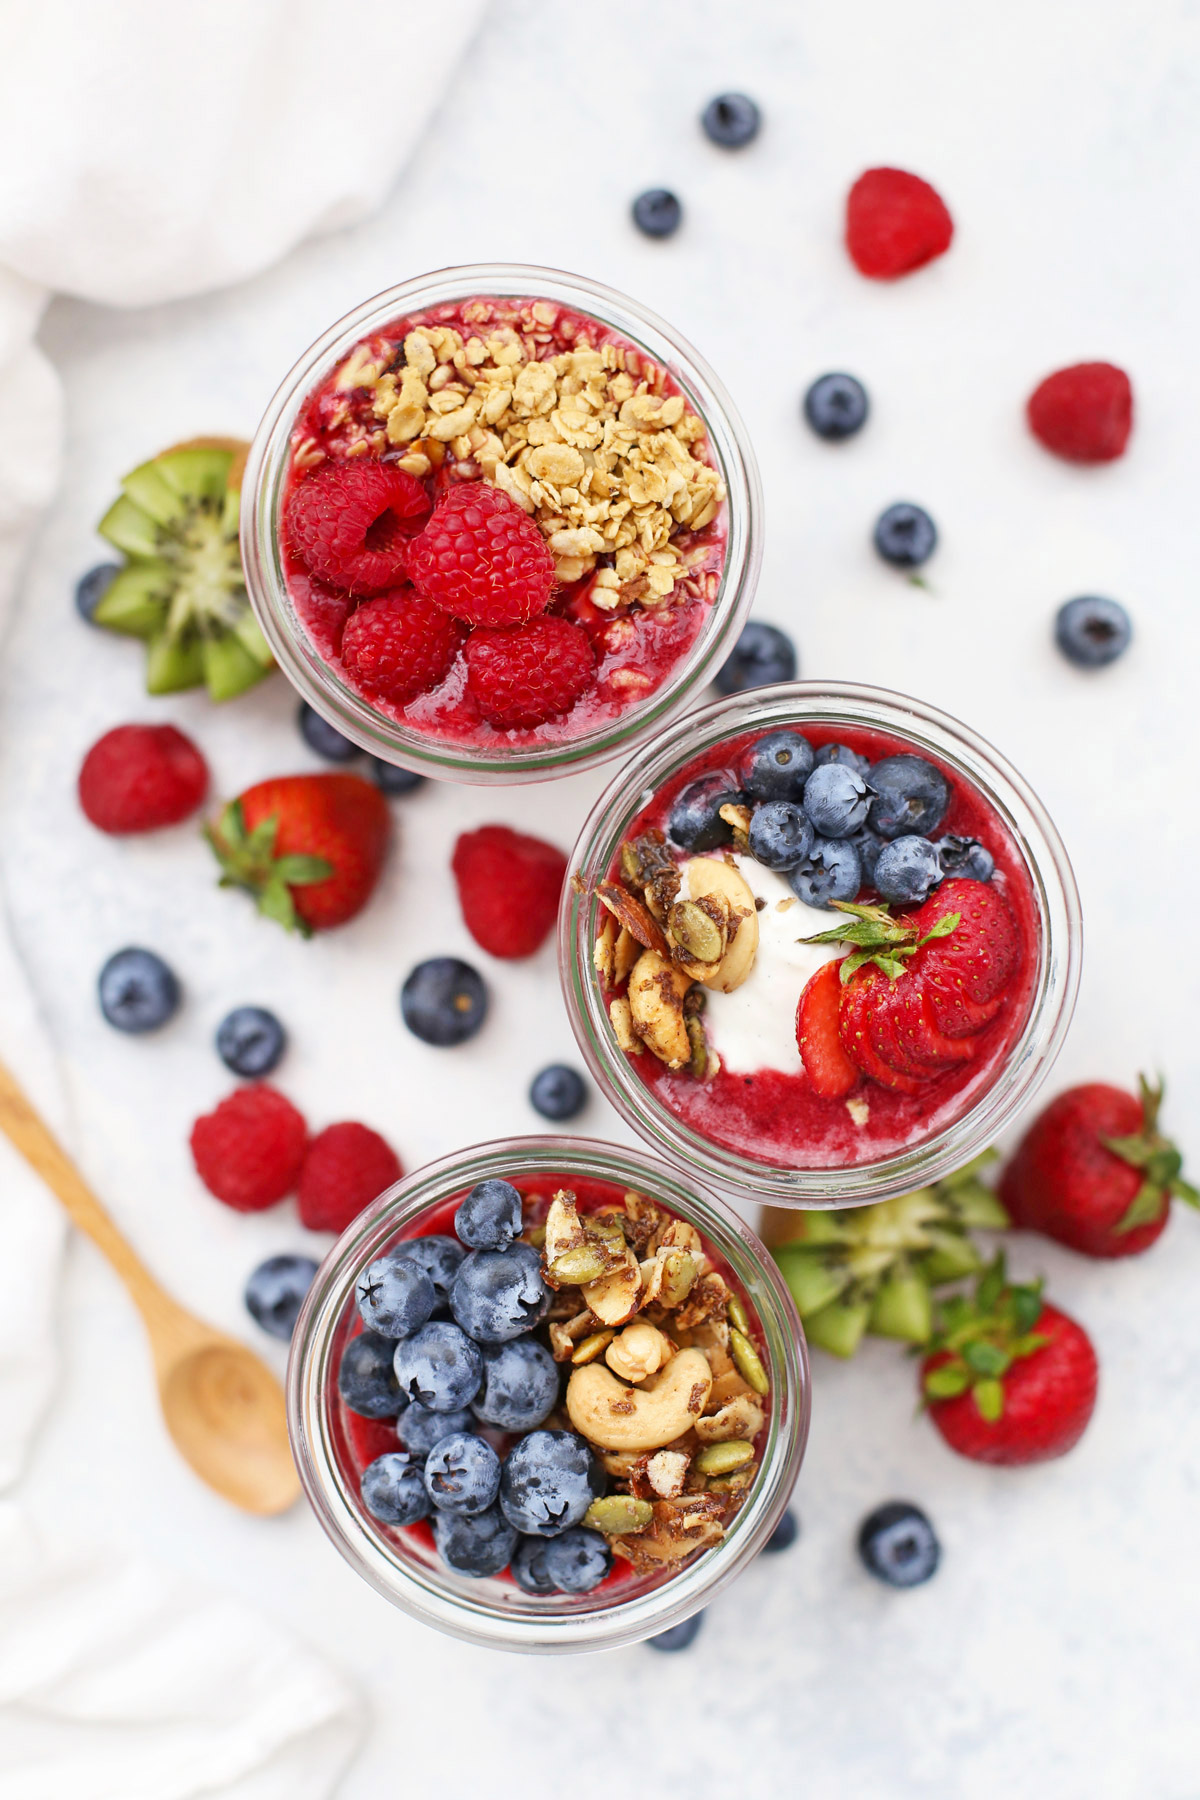 Jars of Paleo Granola Fruit and Yogurt Parfaits with fresh fruit scattered around the background.